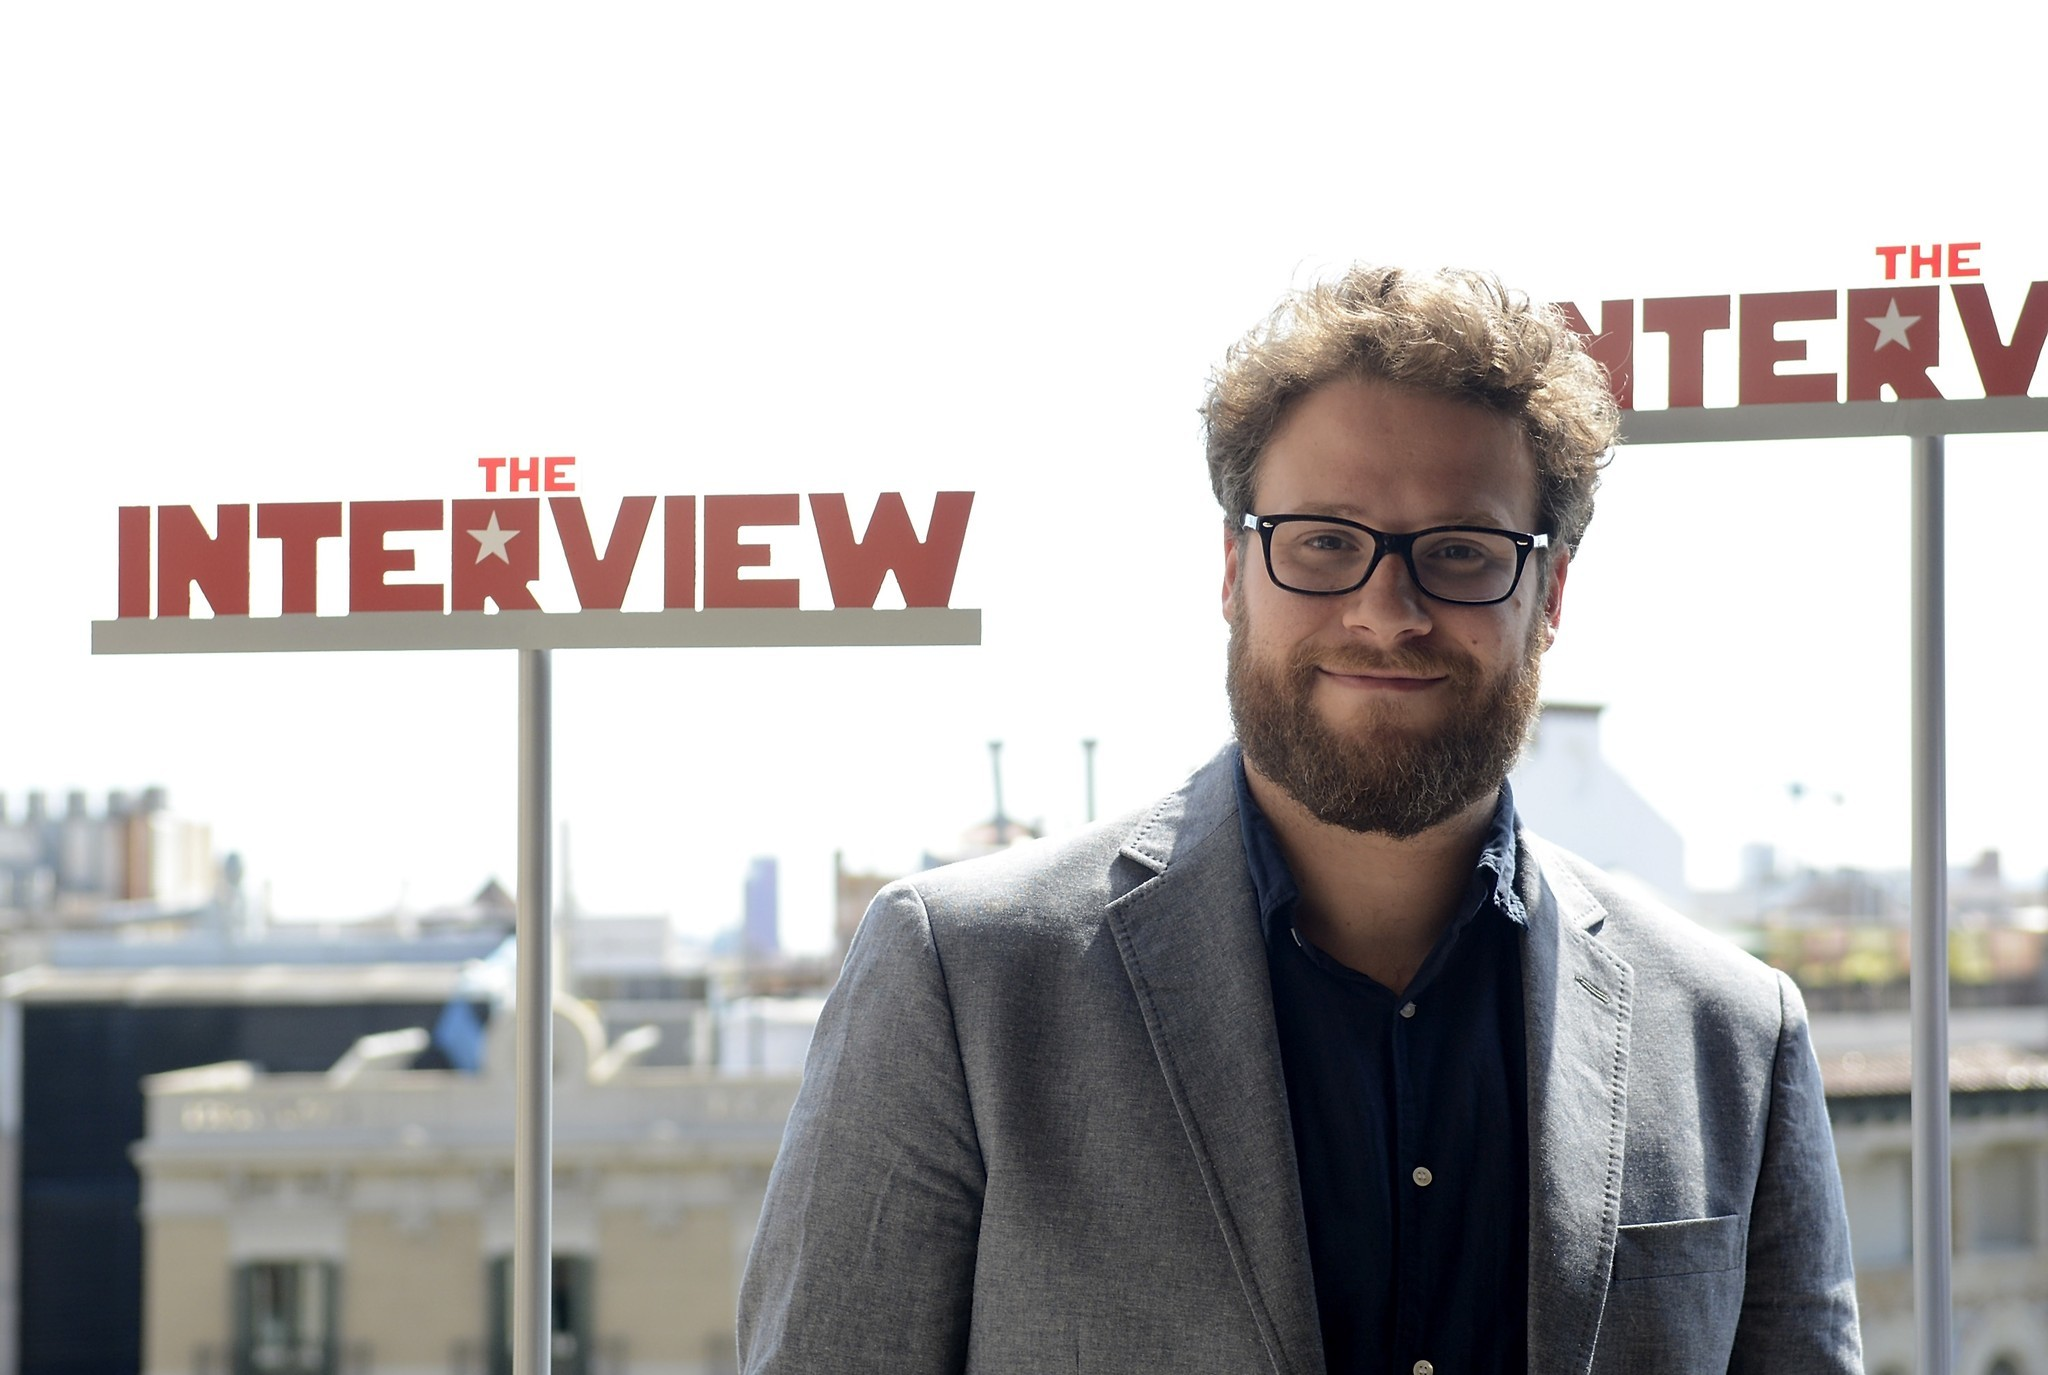 North Korea files U.N. complaint over Seth Rogen film 'The Interview'